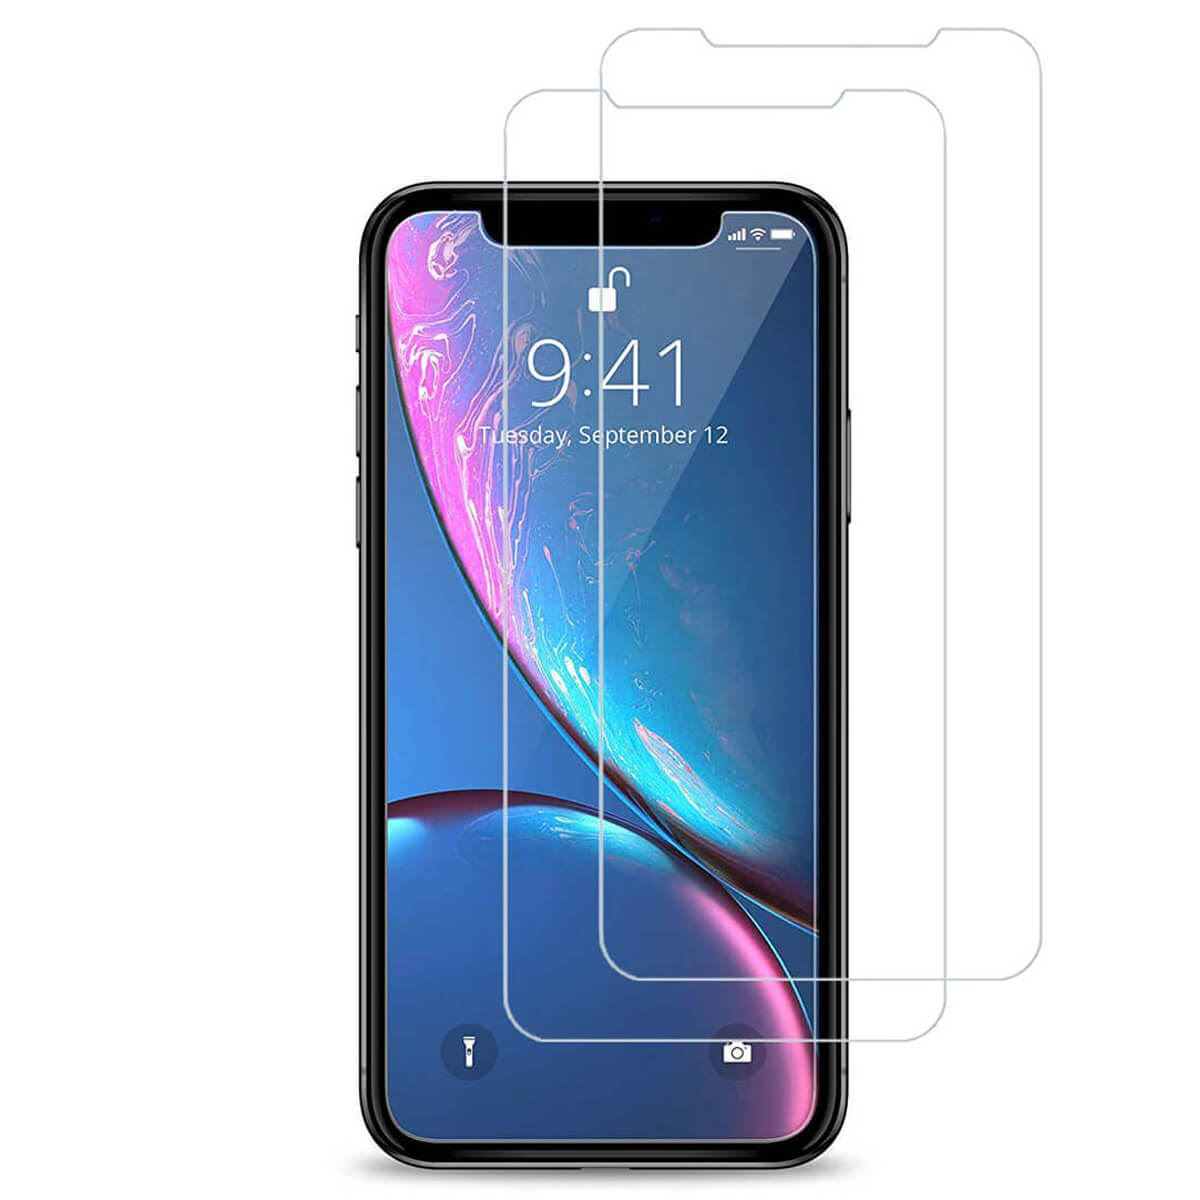 Tempered-Glass-Film-Screen-Protector-For-iPhone-12-Pro-Max-Mini-XR-XS-Max-8-7-6s thumbnail 30